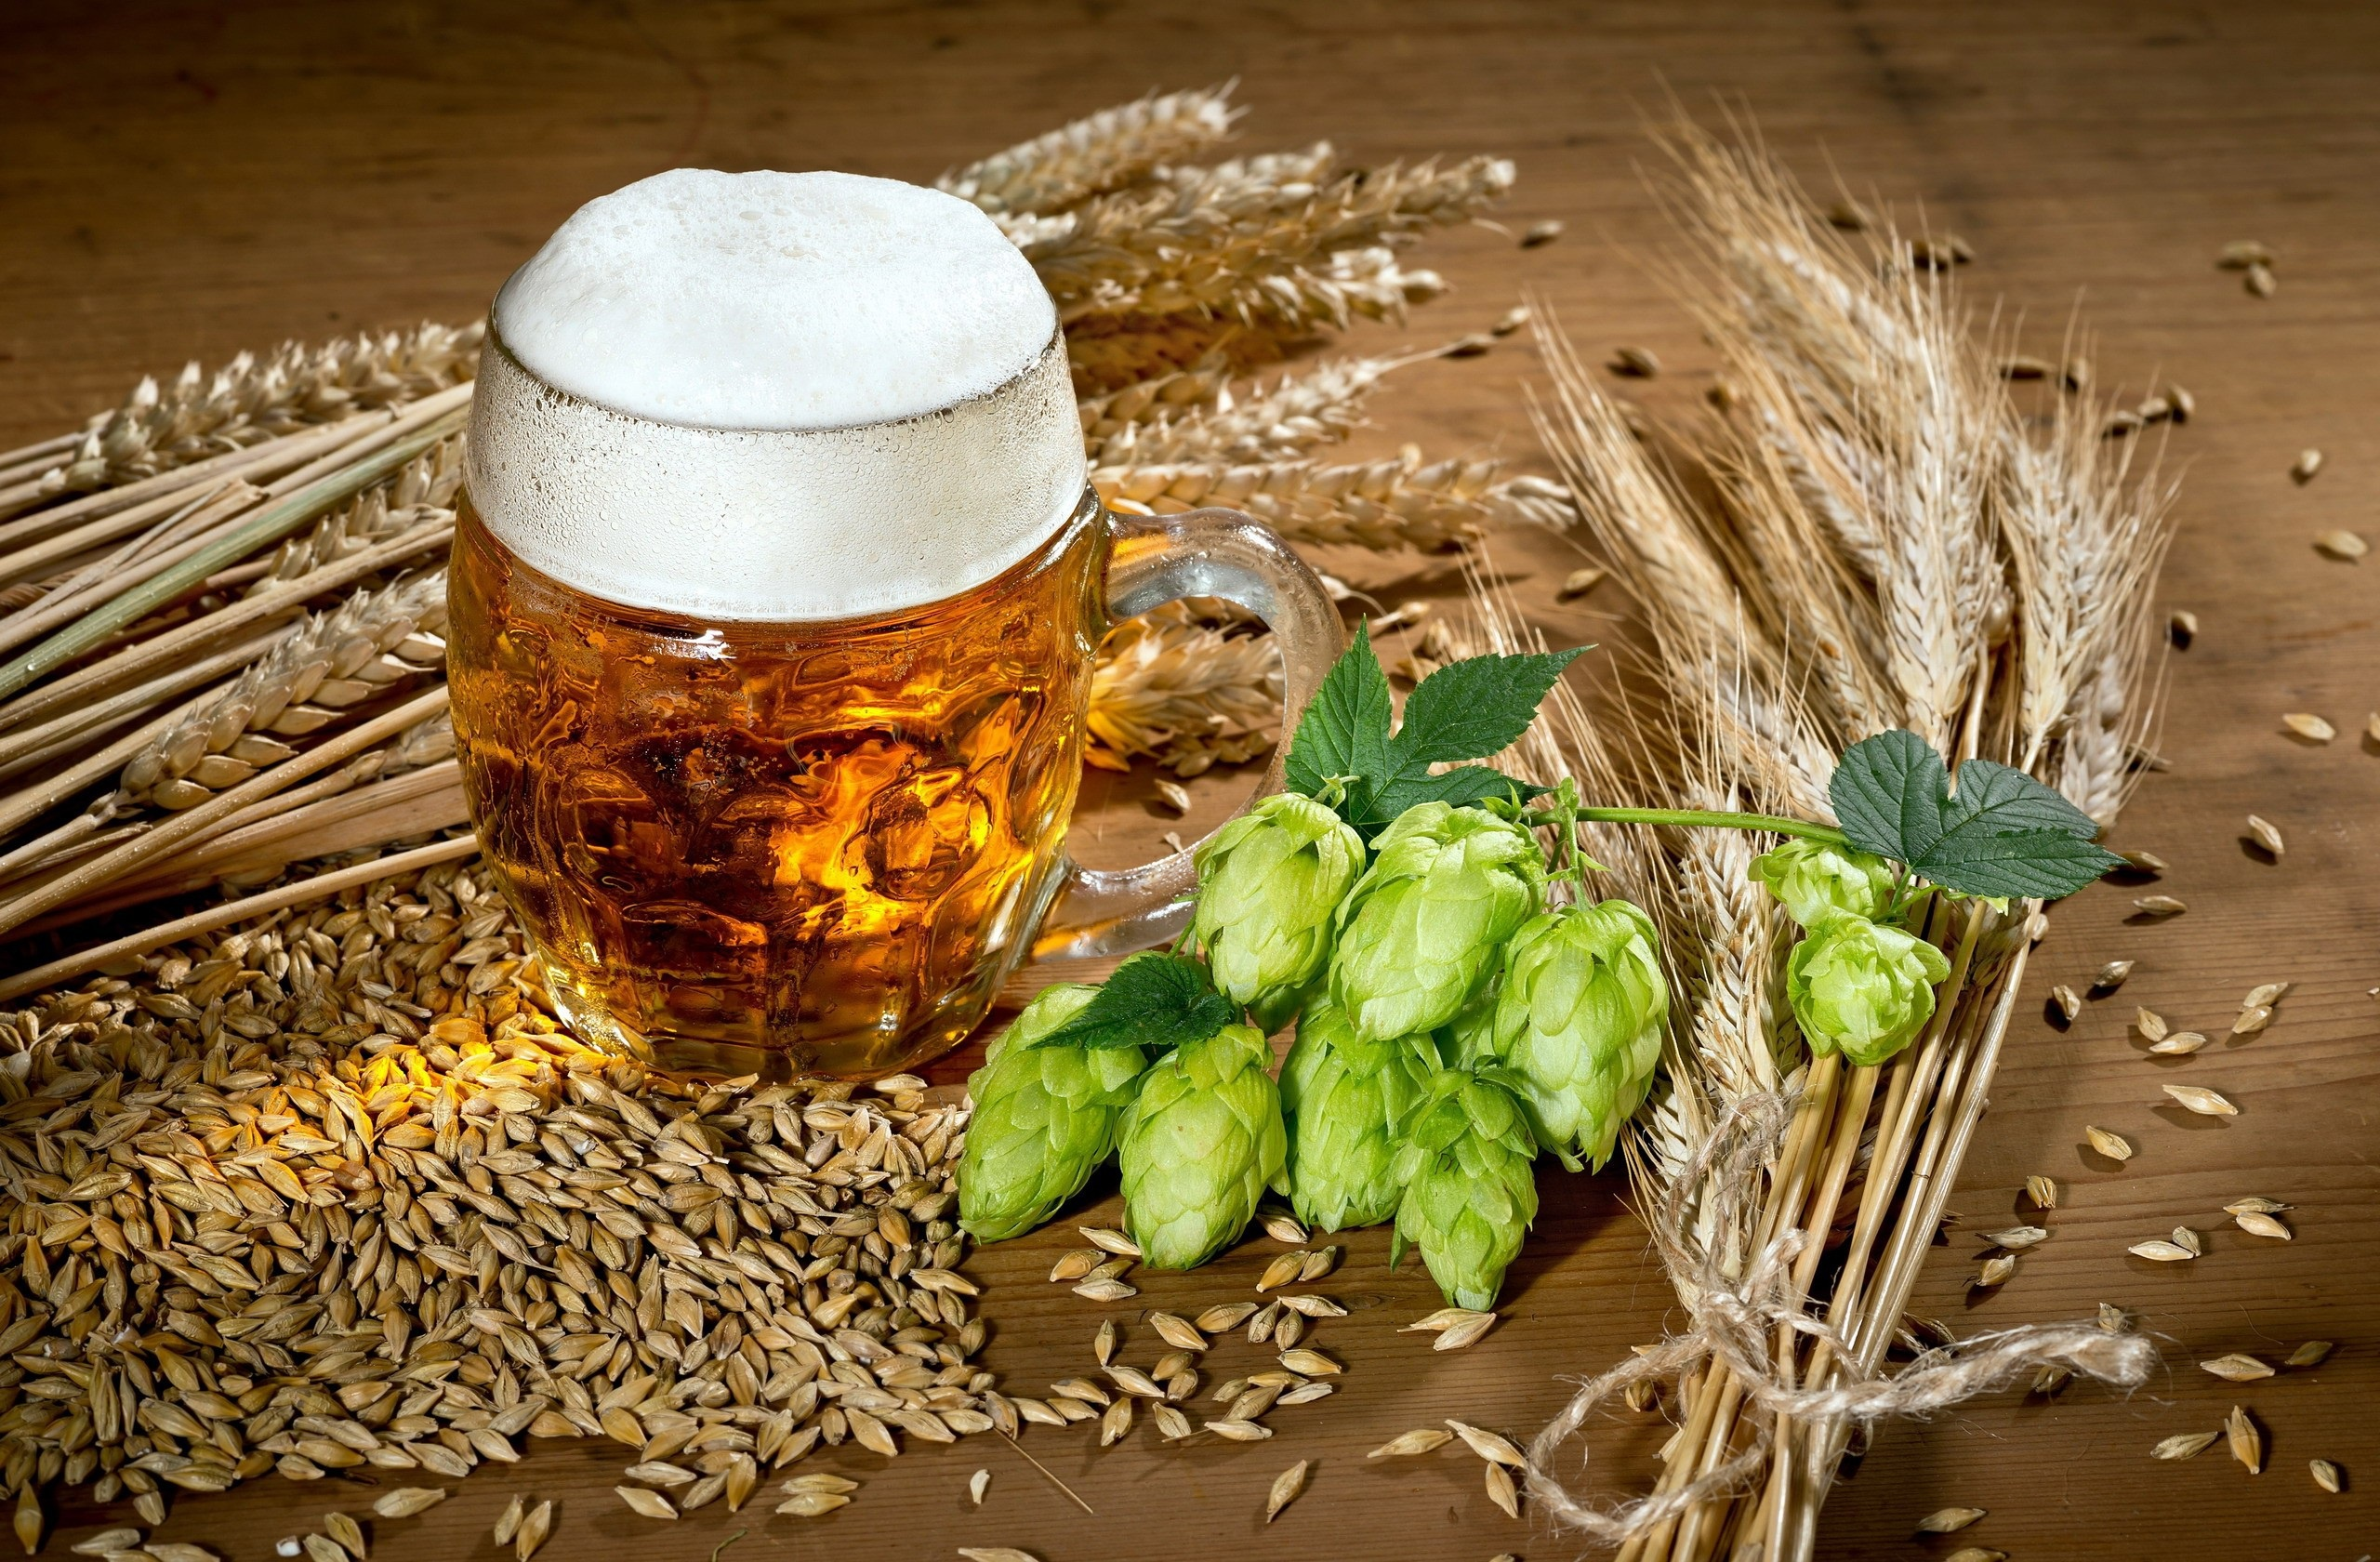 beer hd wallpaper background image 2560x1680 id 981891